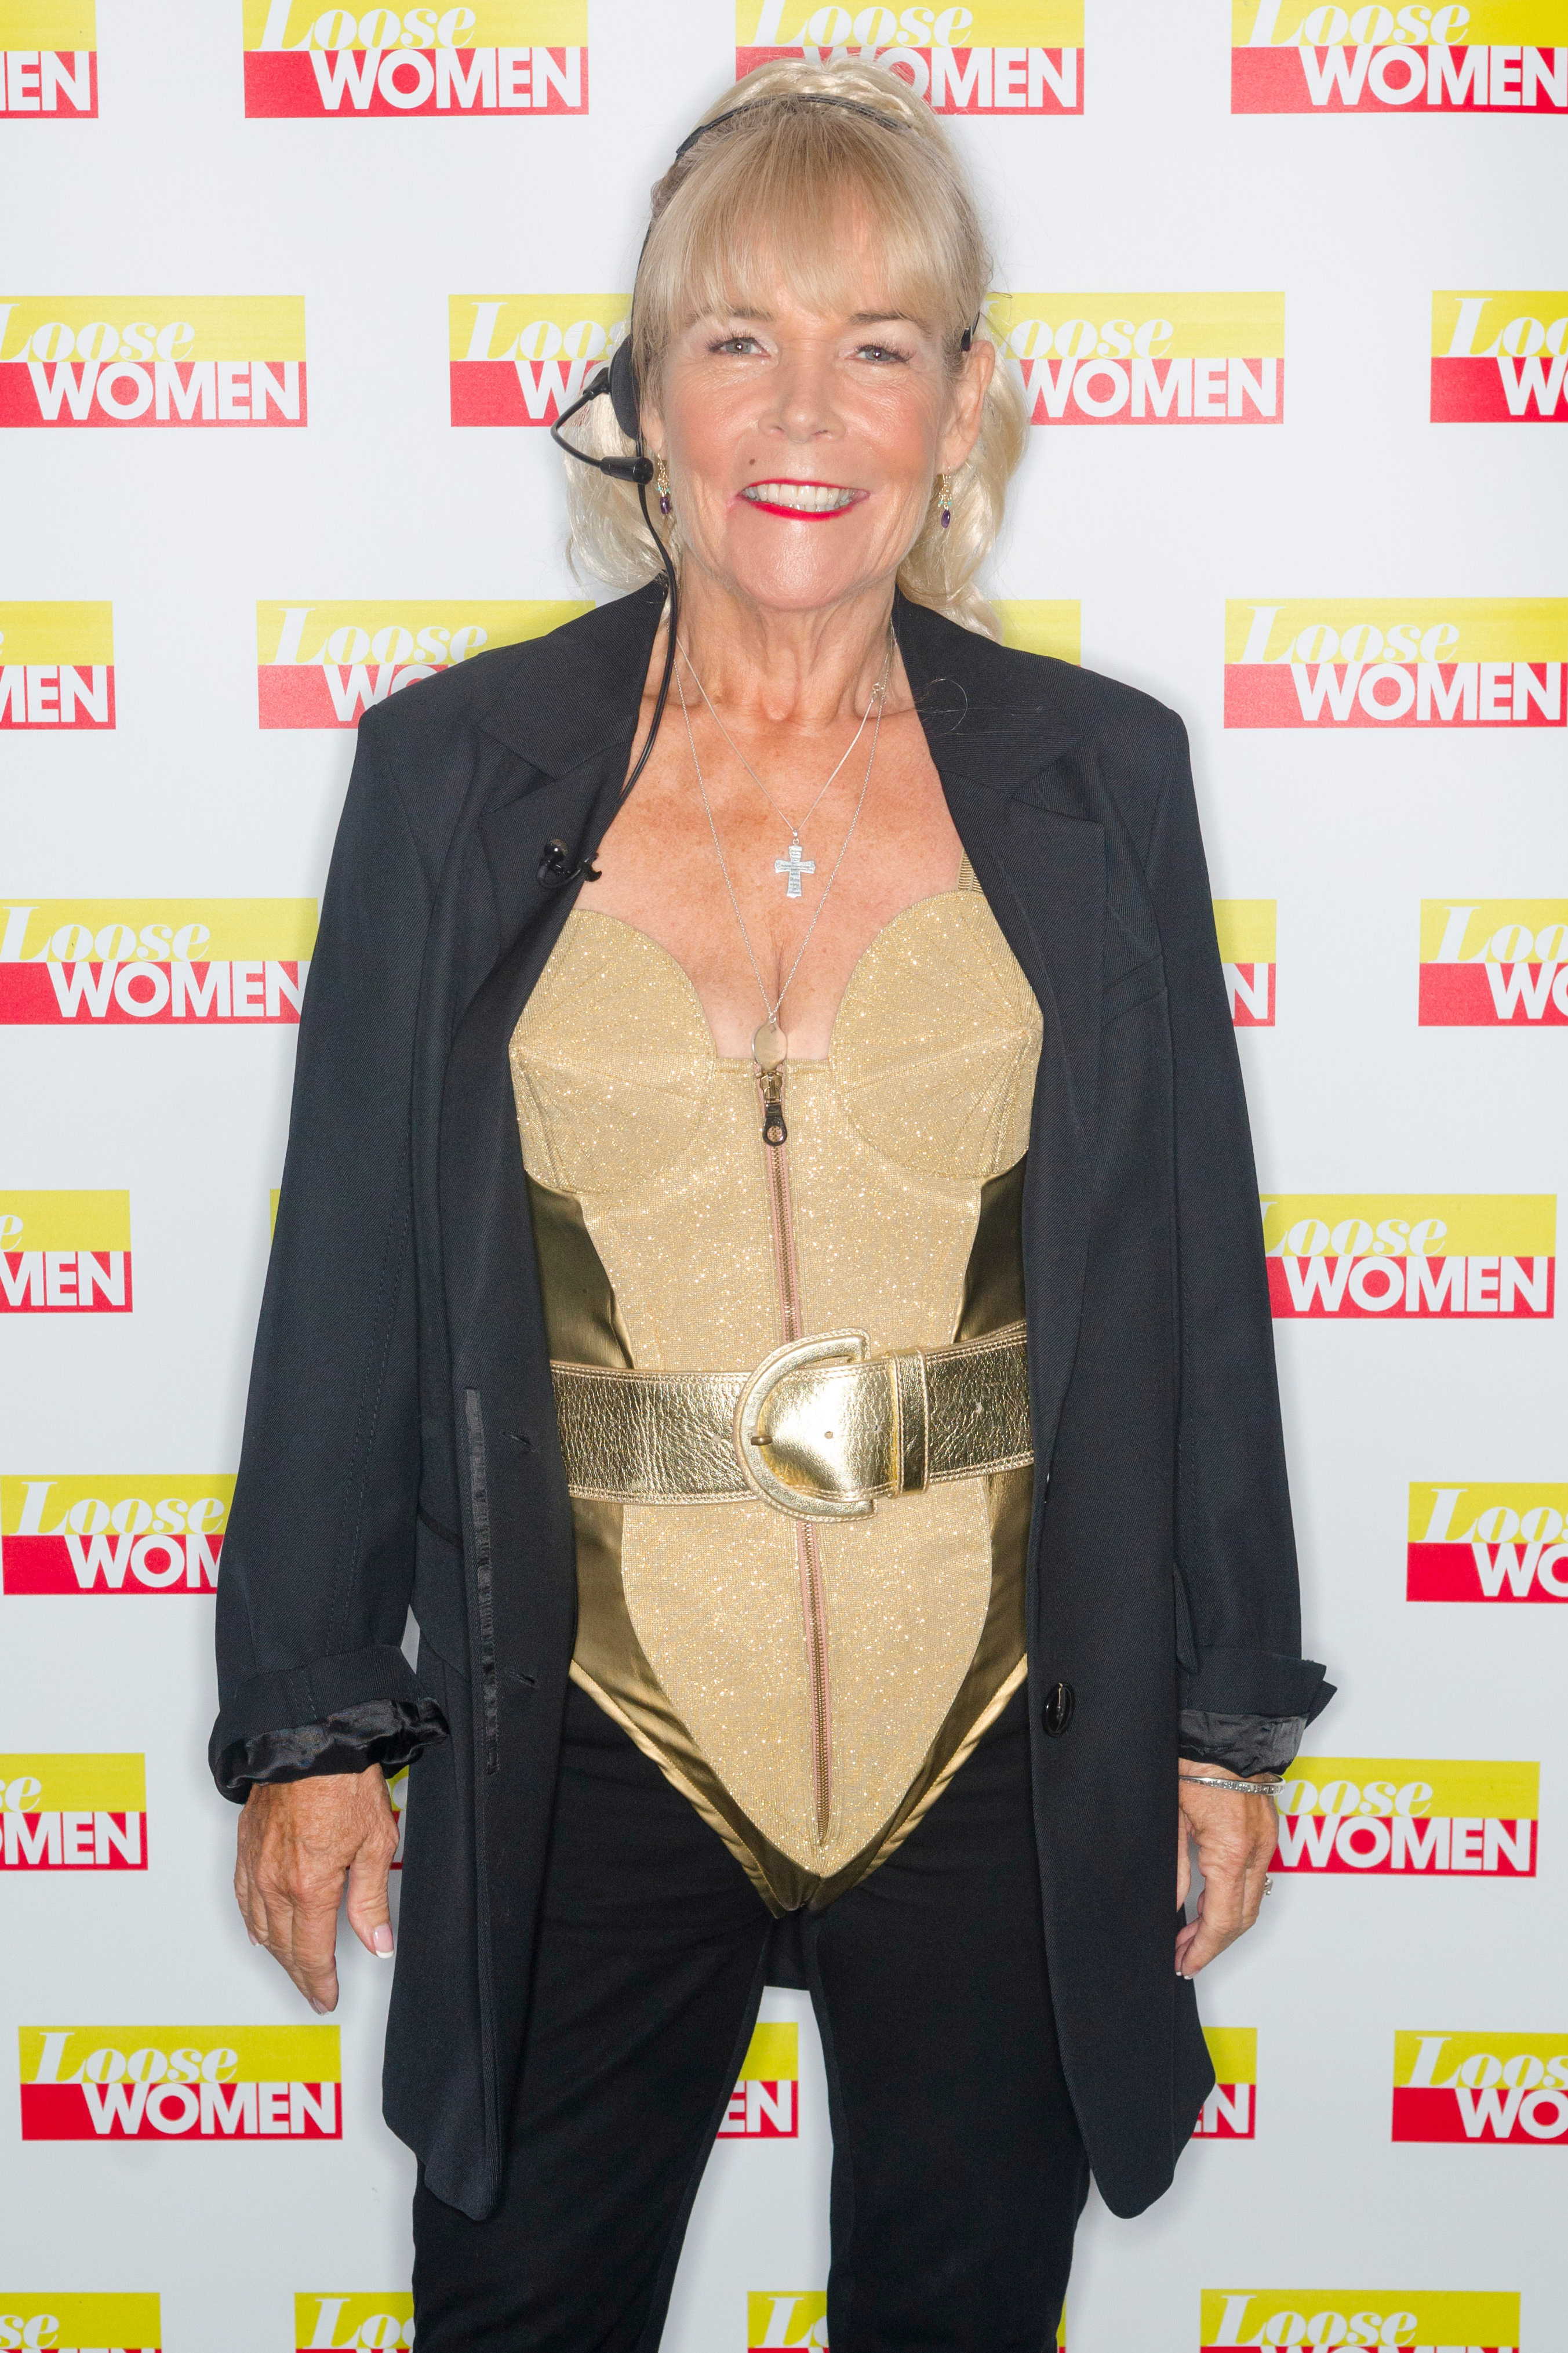 Linda Robson wows fans as she shows off her gorgeous figure